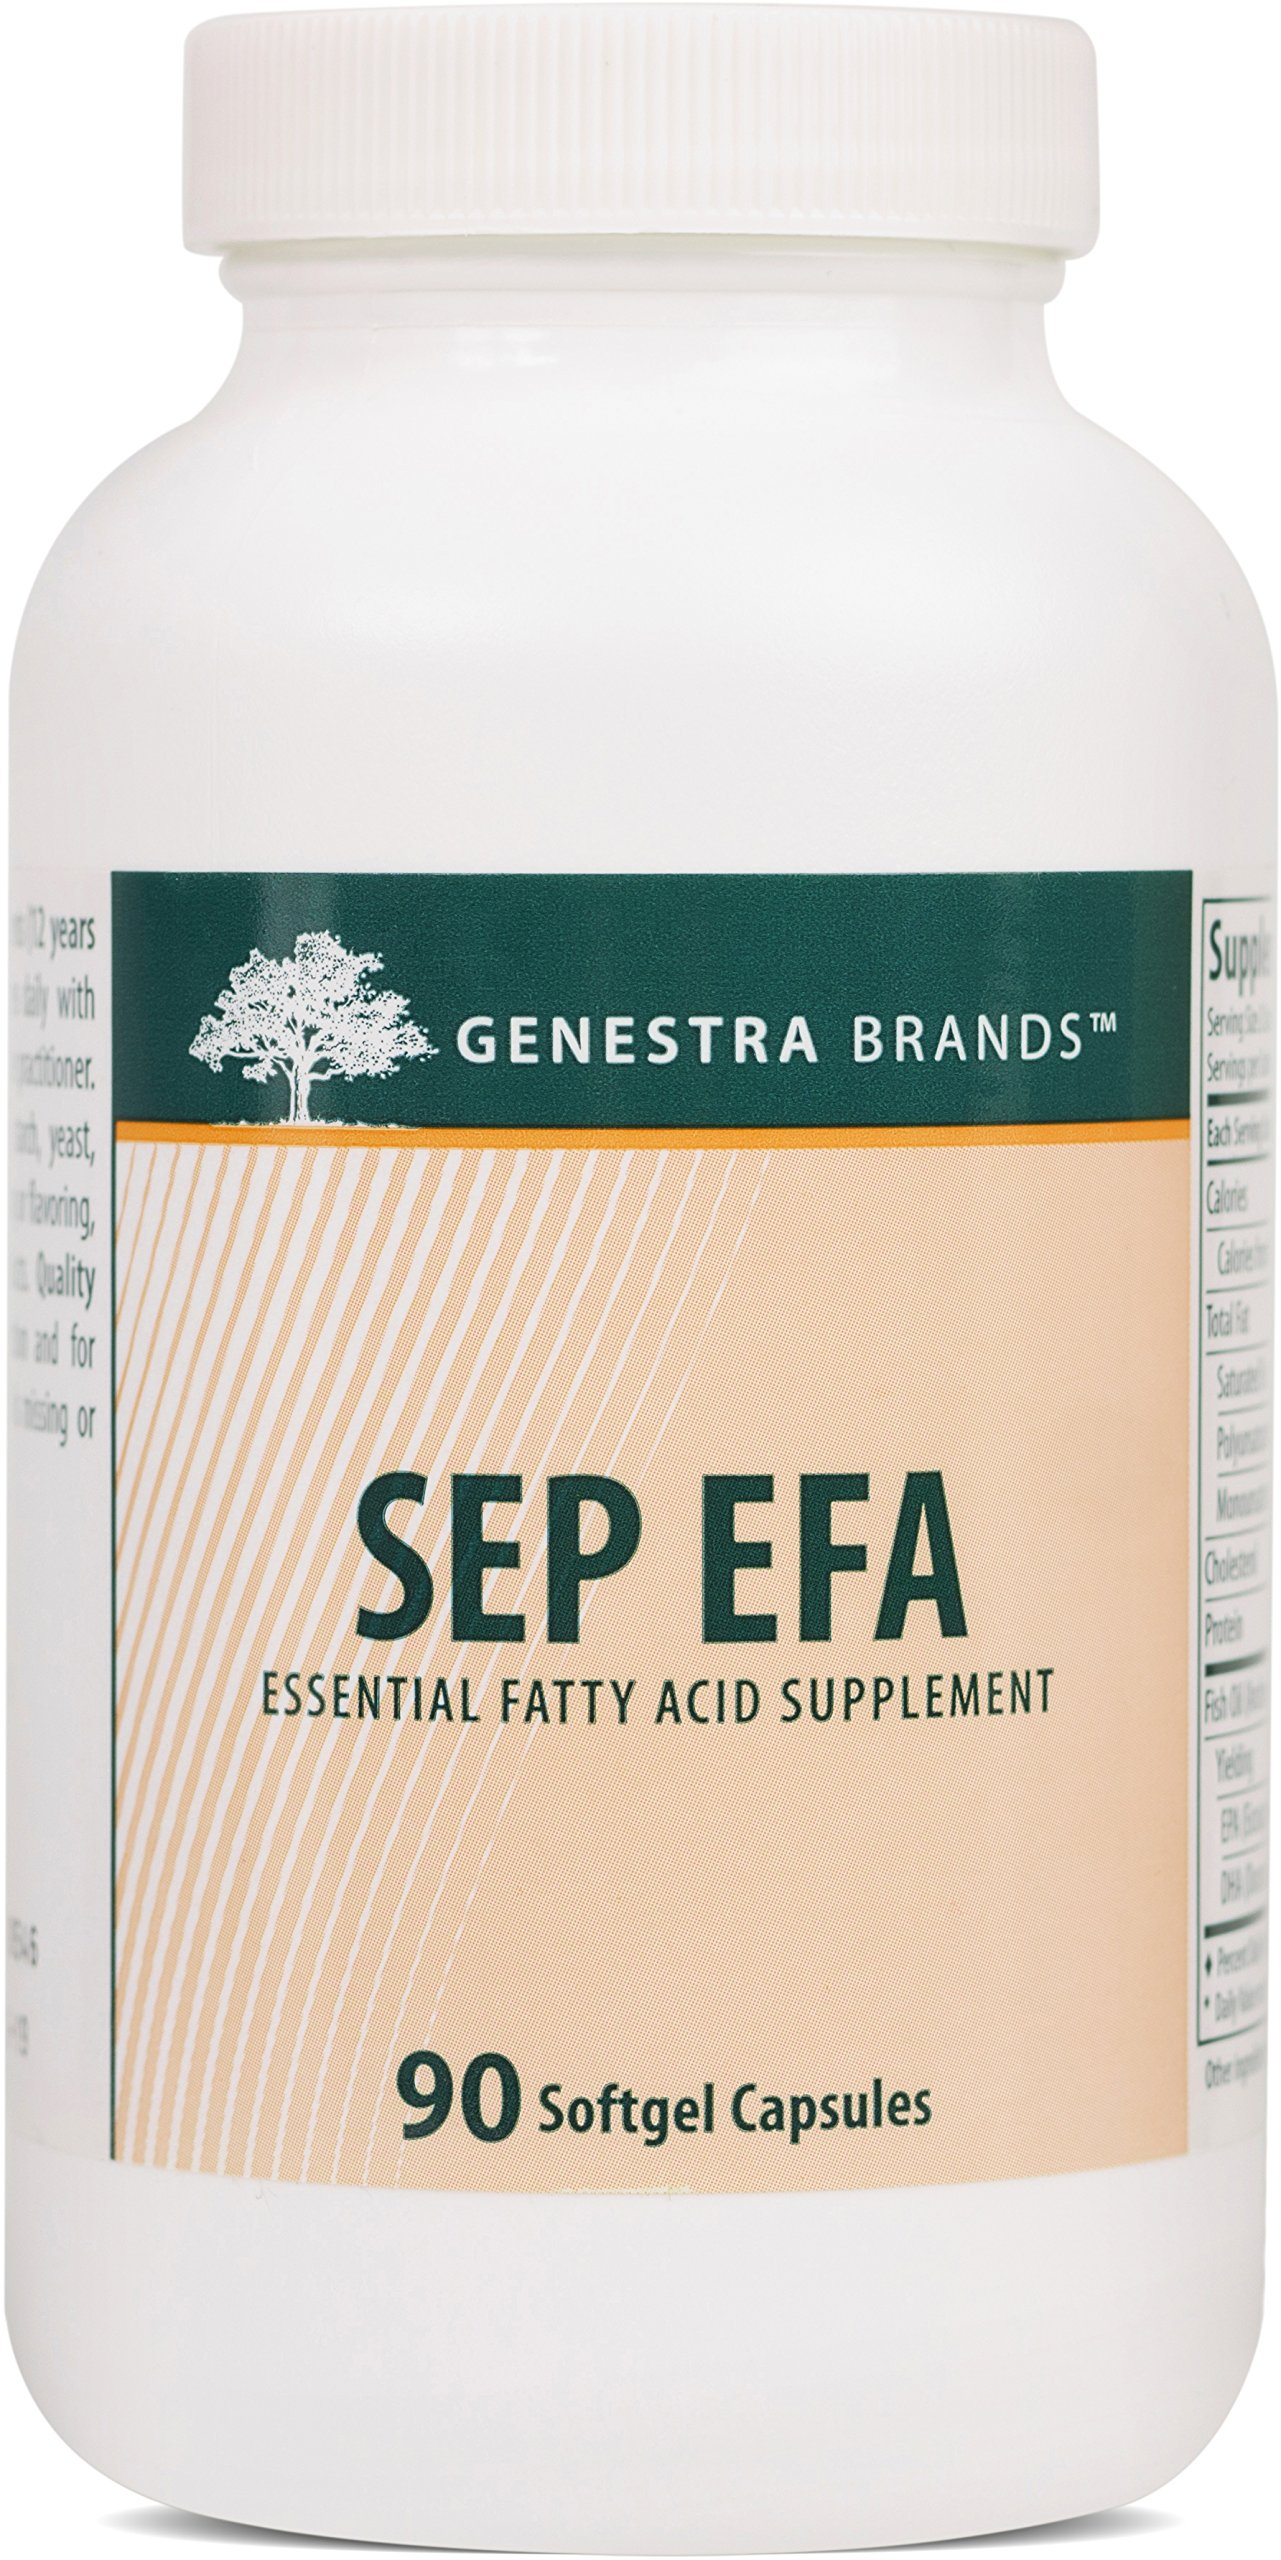 Genestra Brands - SEP EFA - Omega Fatty Acids to Support Optimal Cardiovascular, Neuronal and Cognitive Health* - 90 Softgel Capsules